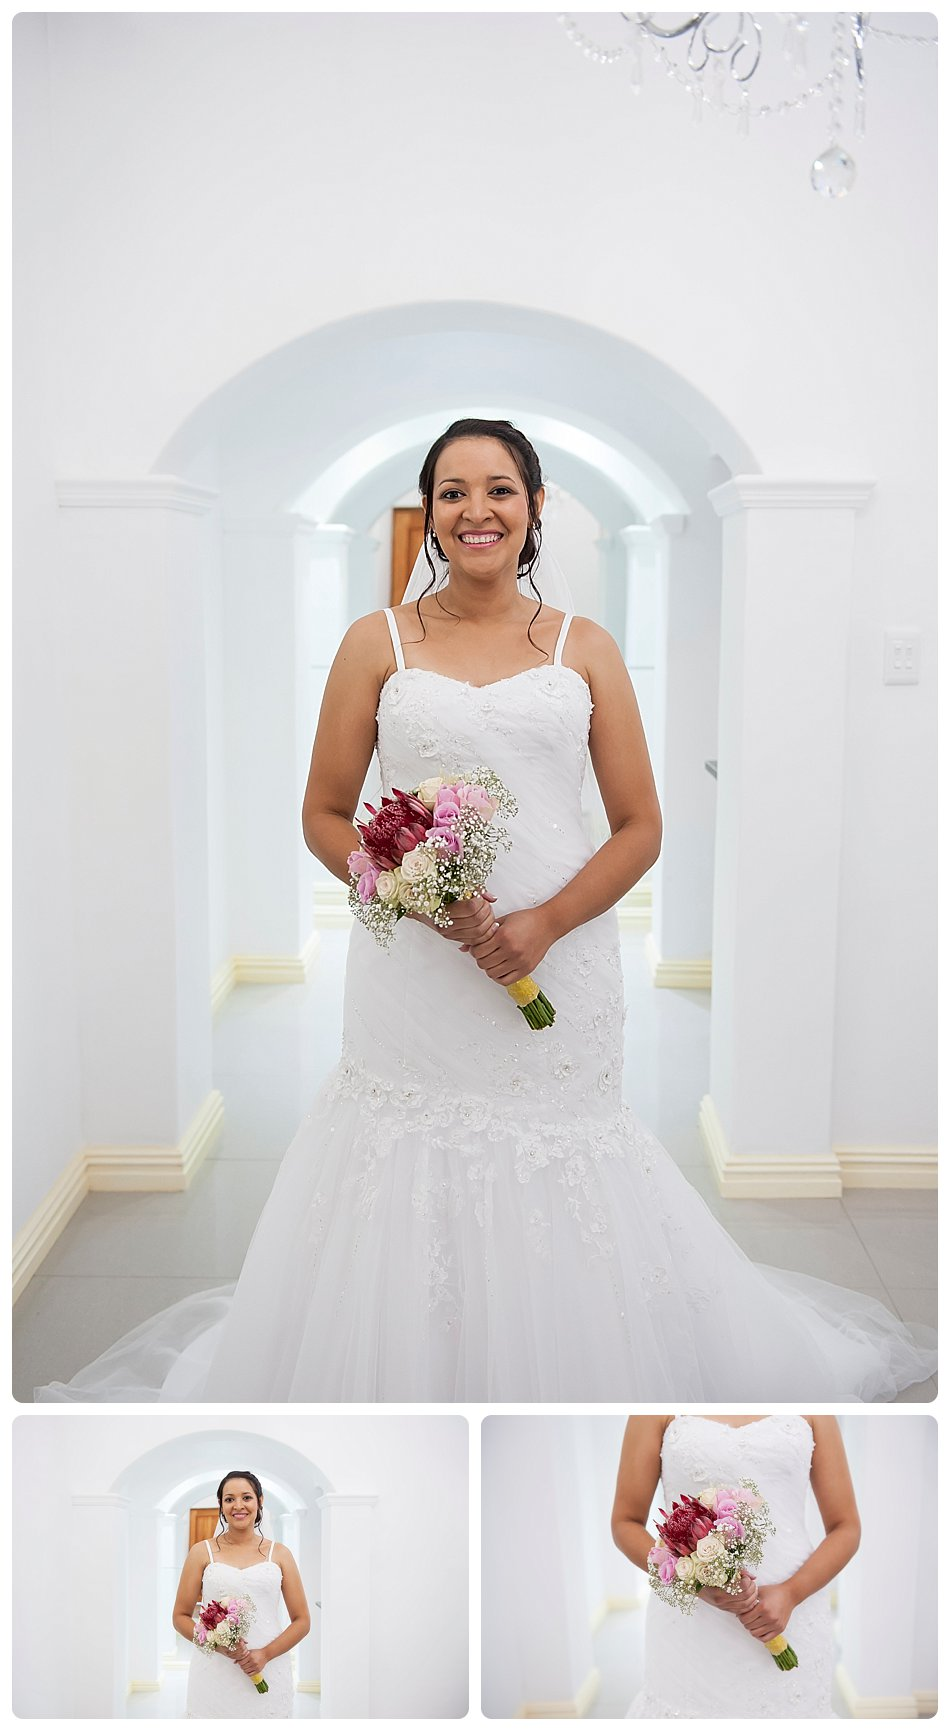 wedding-photographer-cae-town-joanne-markland-nelsons-estate-paarl-0009